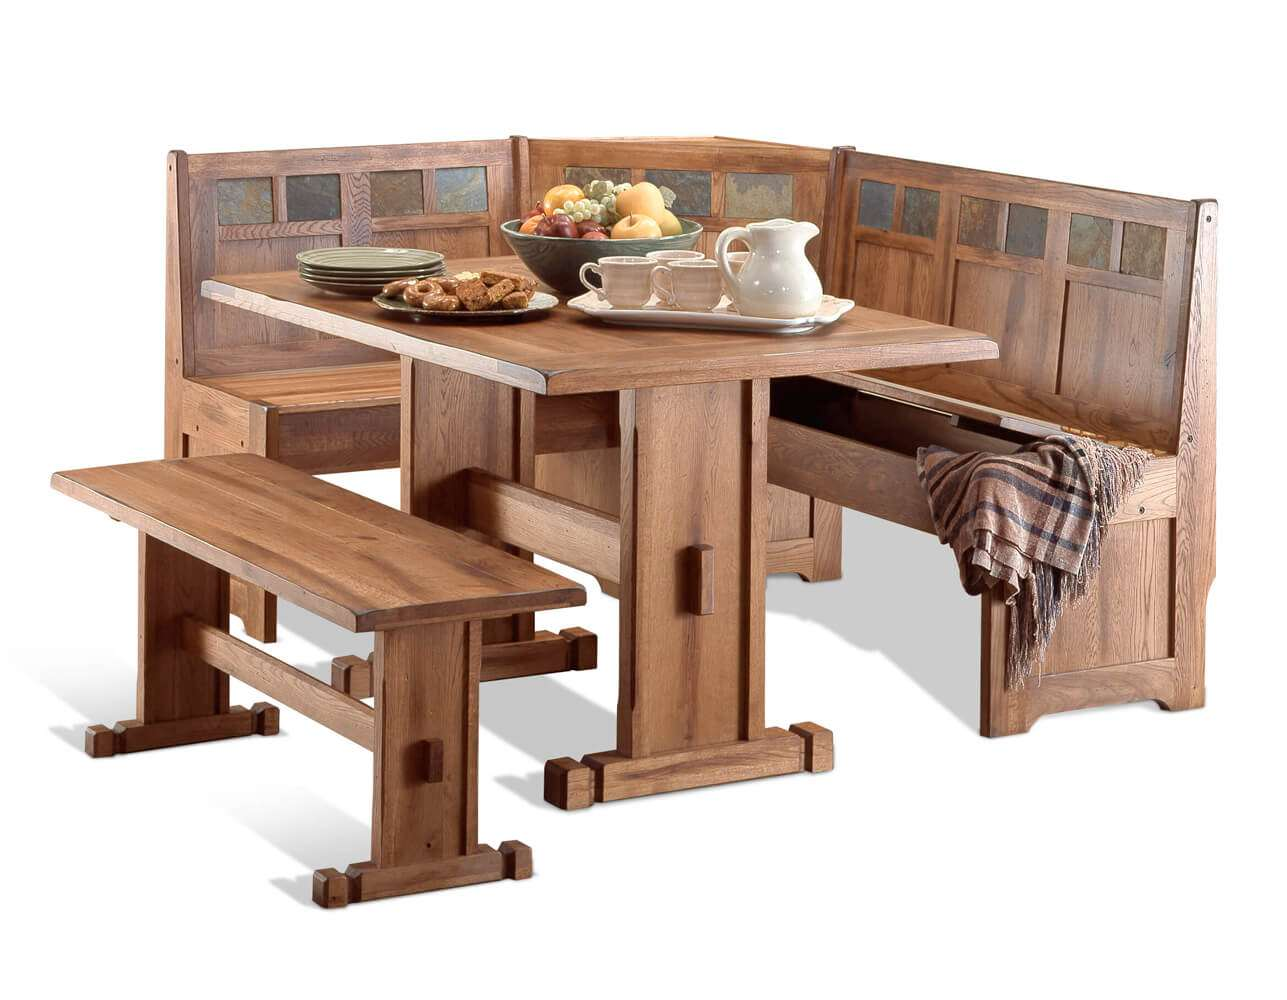 Rustic dining table corner dining set